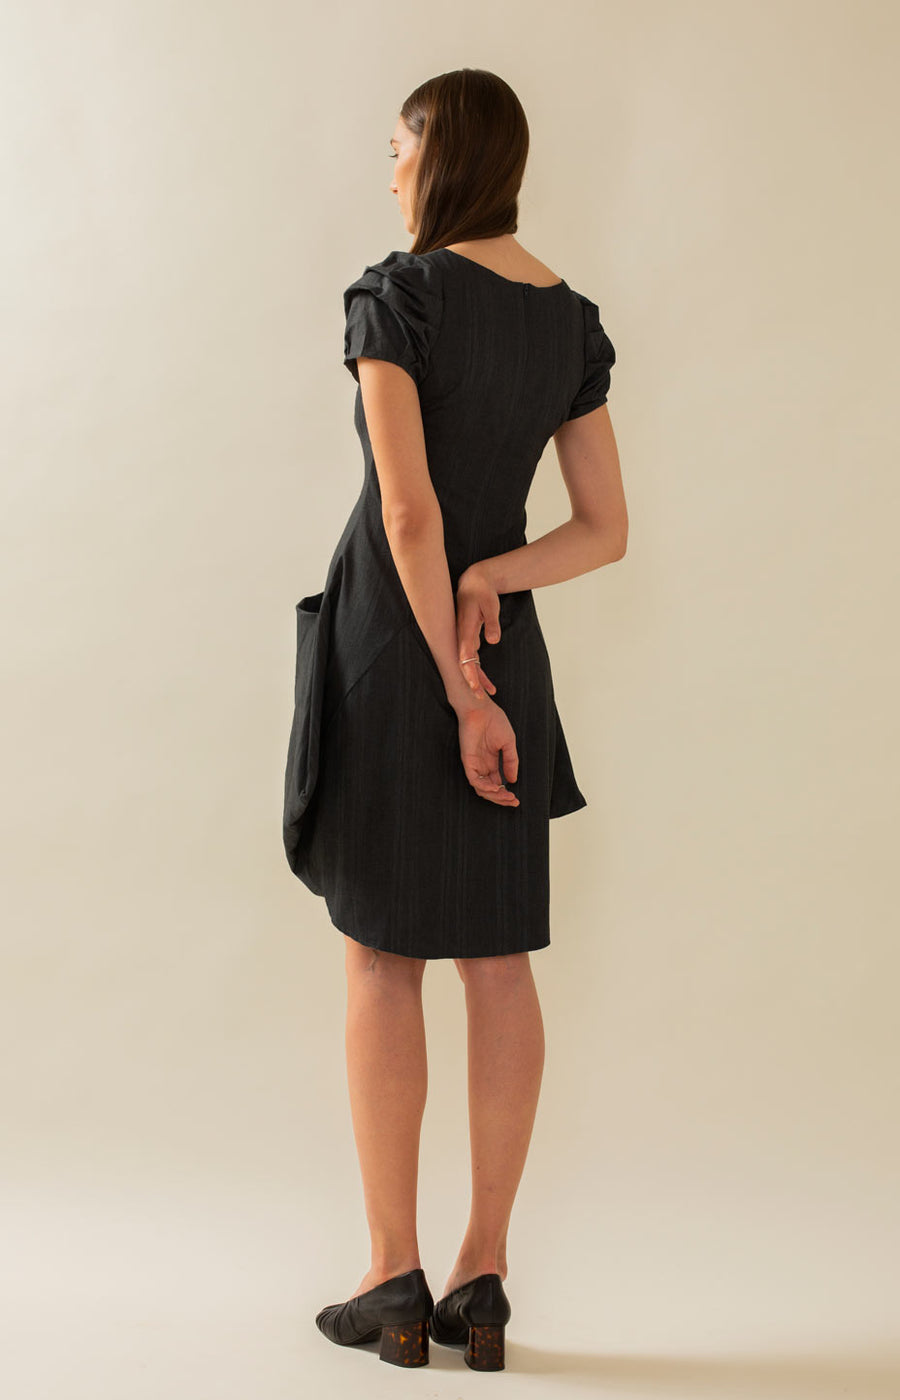 PicnicLeija Dress Coal Black - Dresses - TAUKO - TAUKODESIGN